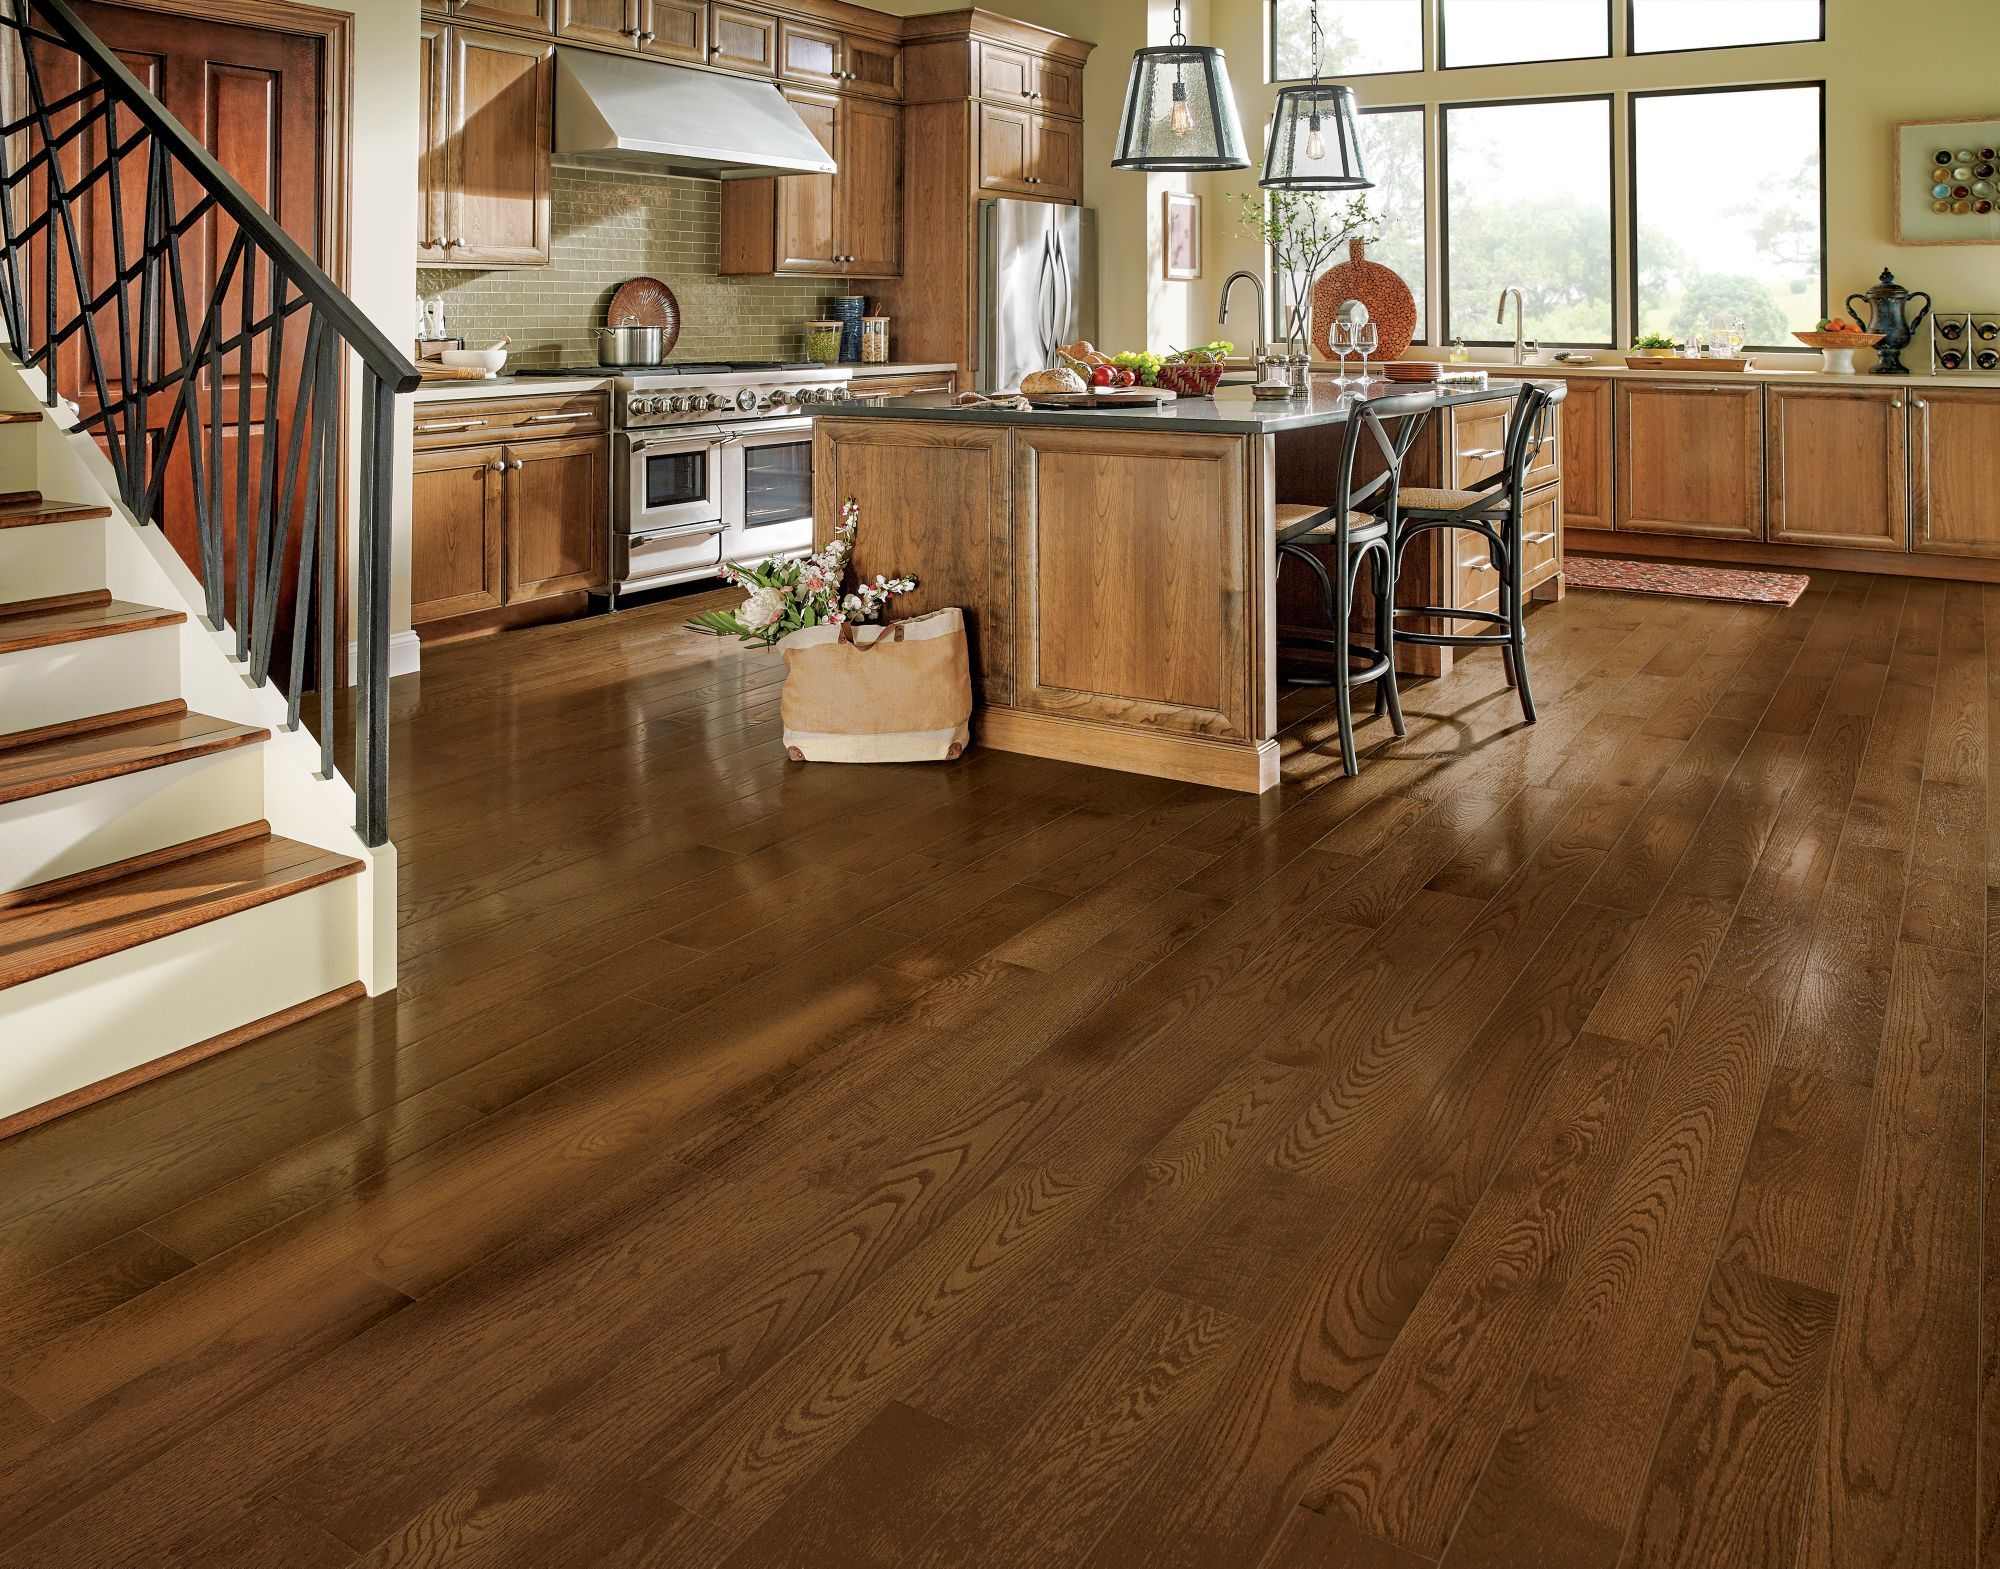 performance oak flooring floor y care pa armstrong plank for archaic wood armstron lancaster floors plus hardwood of